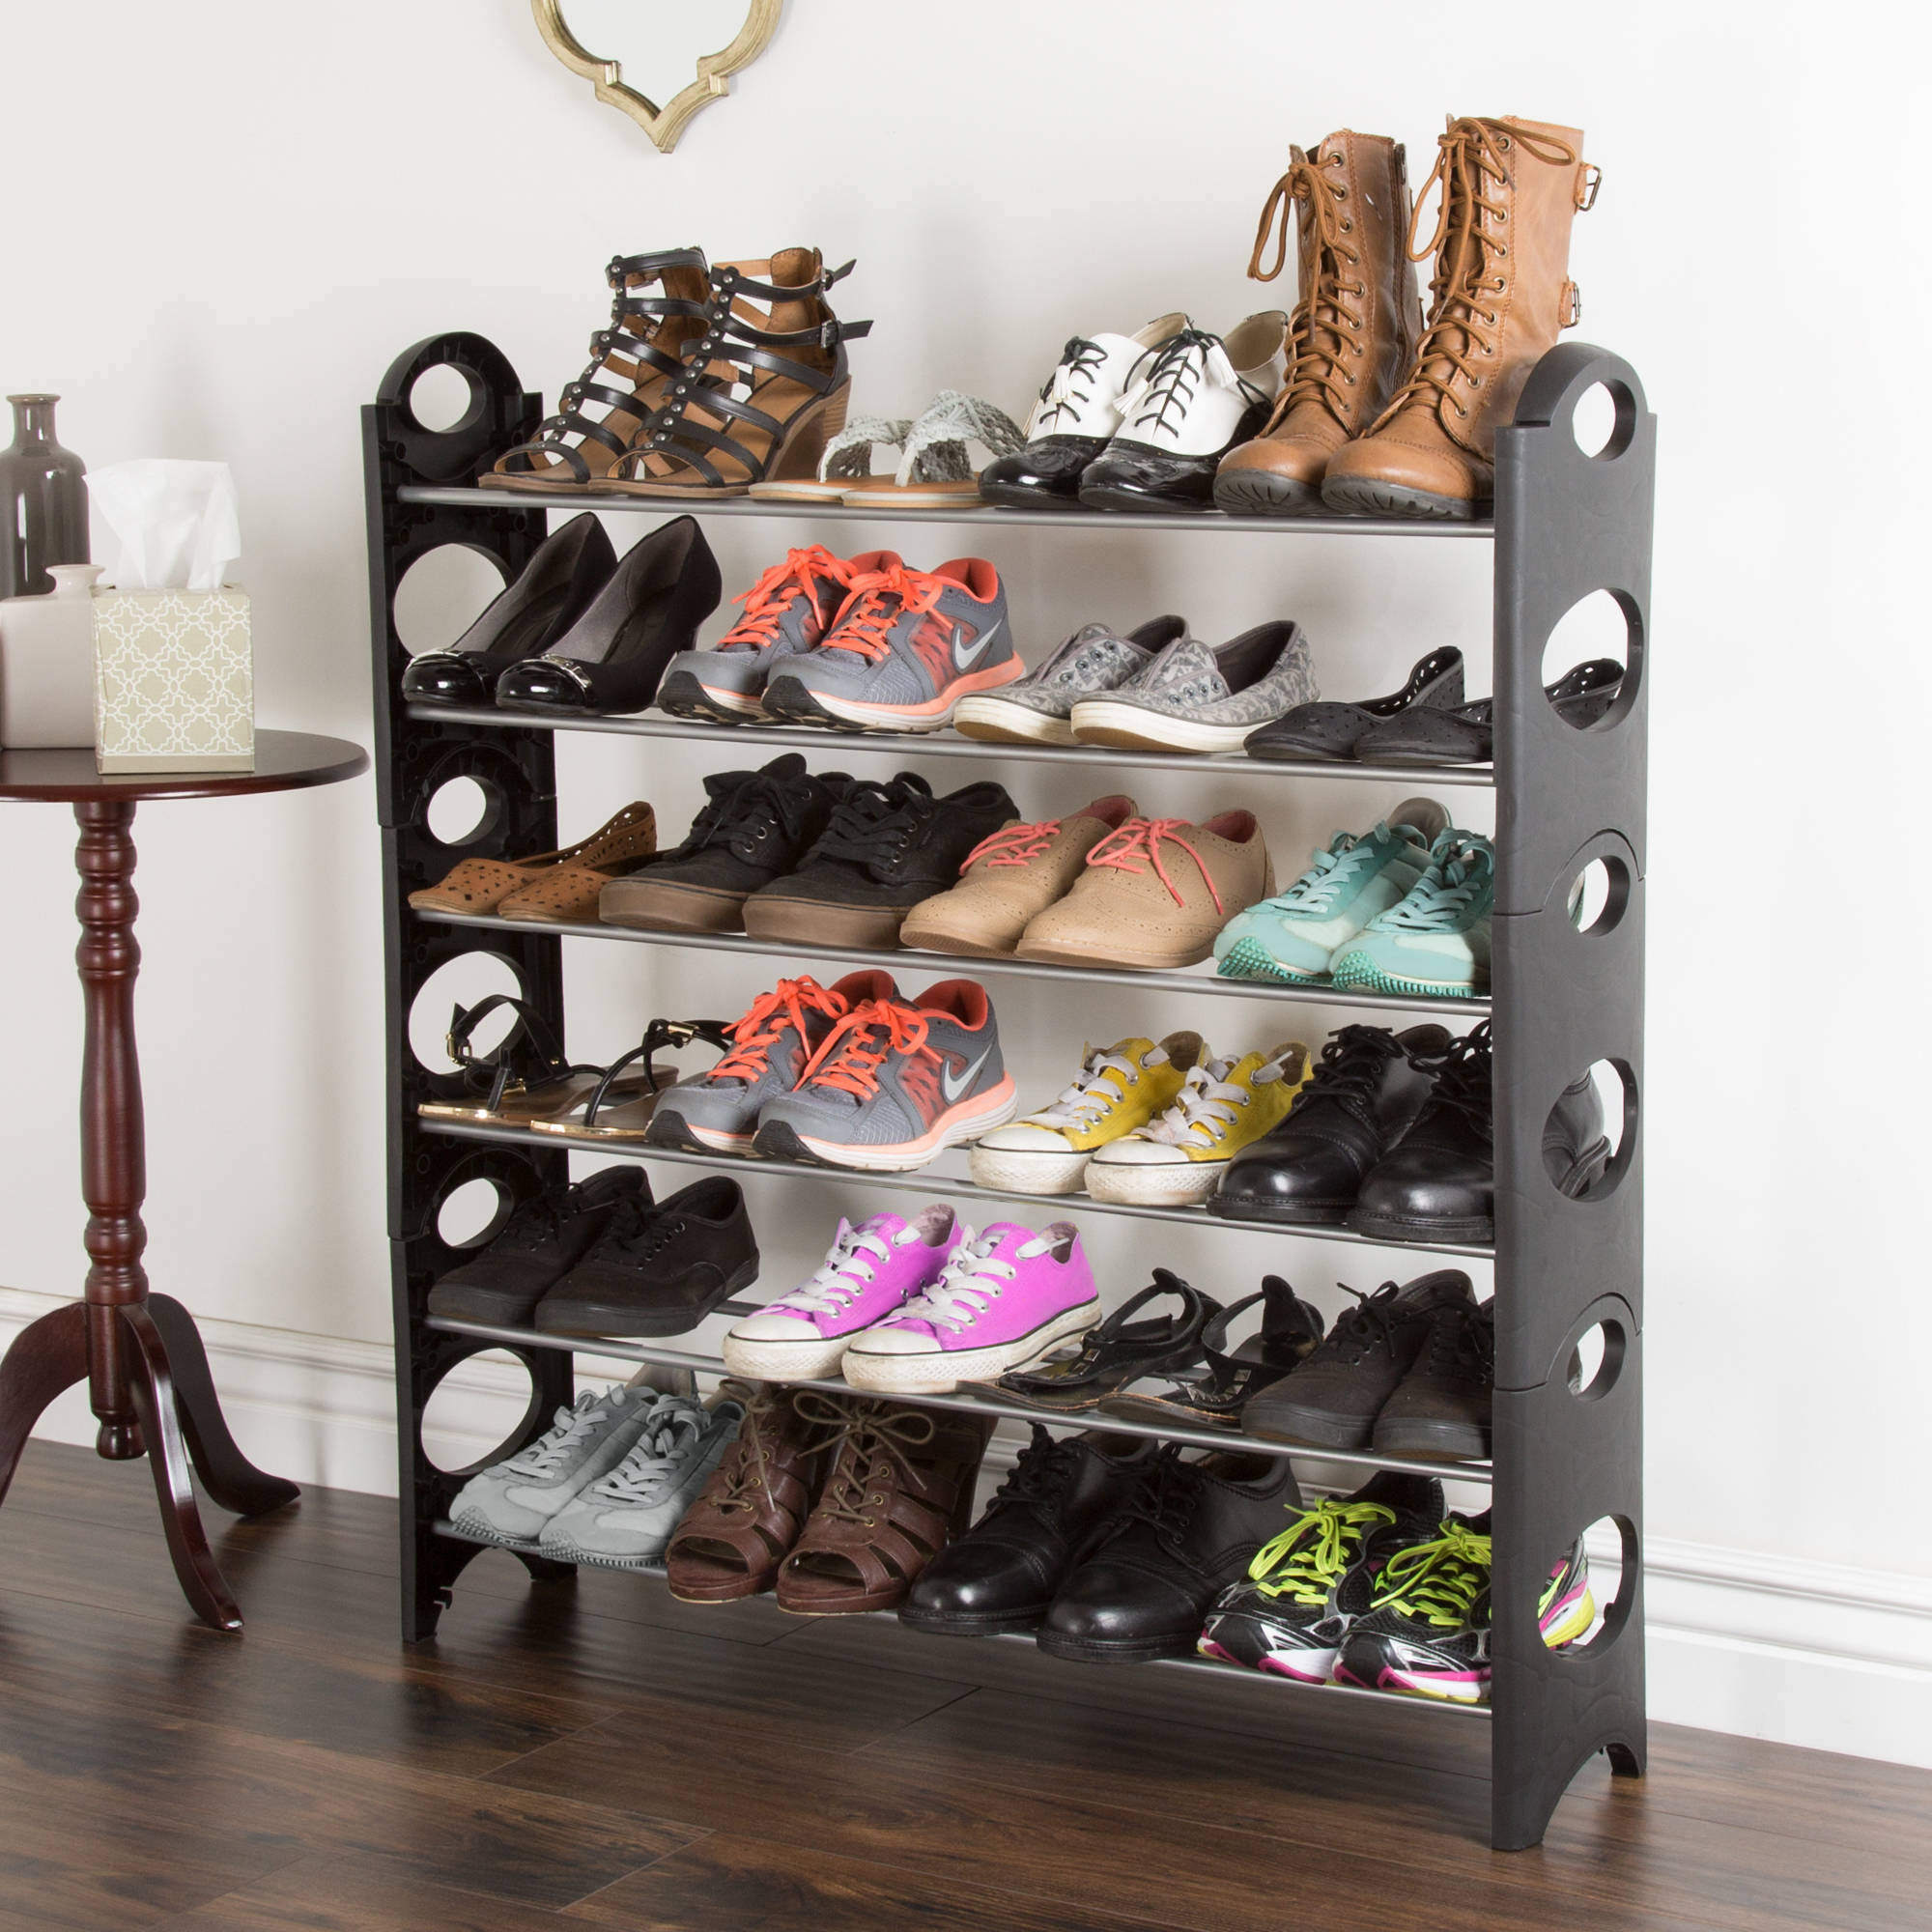 Shoe Rack, Stackable Storage Bench – Closet, Bathroom, Kitchen, Entry Organizer, 6-Tier Space Saver Shoe Rack by Everyday Home